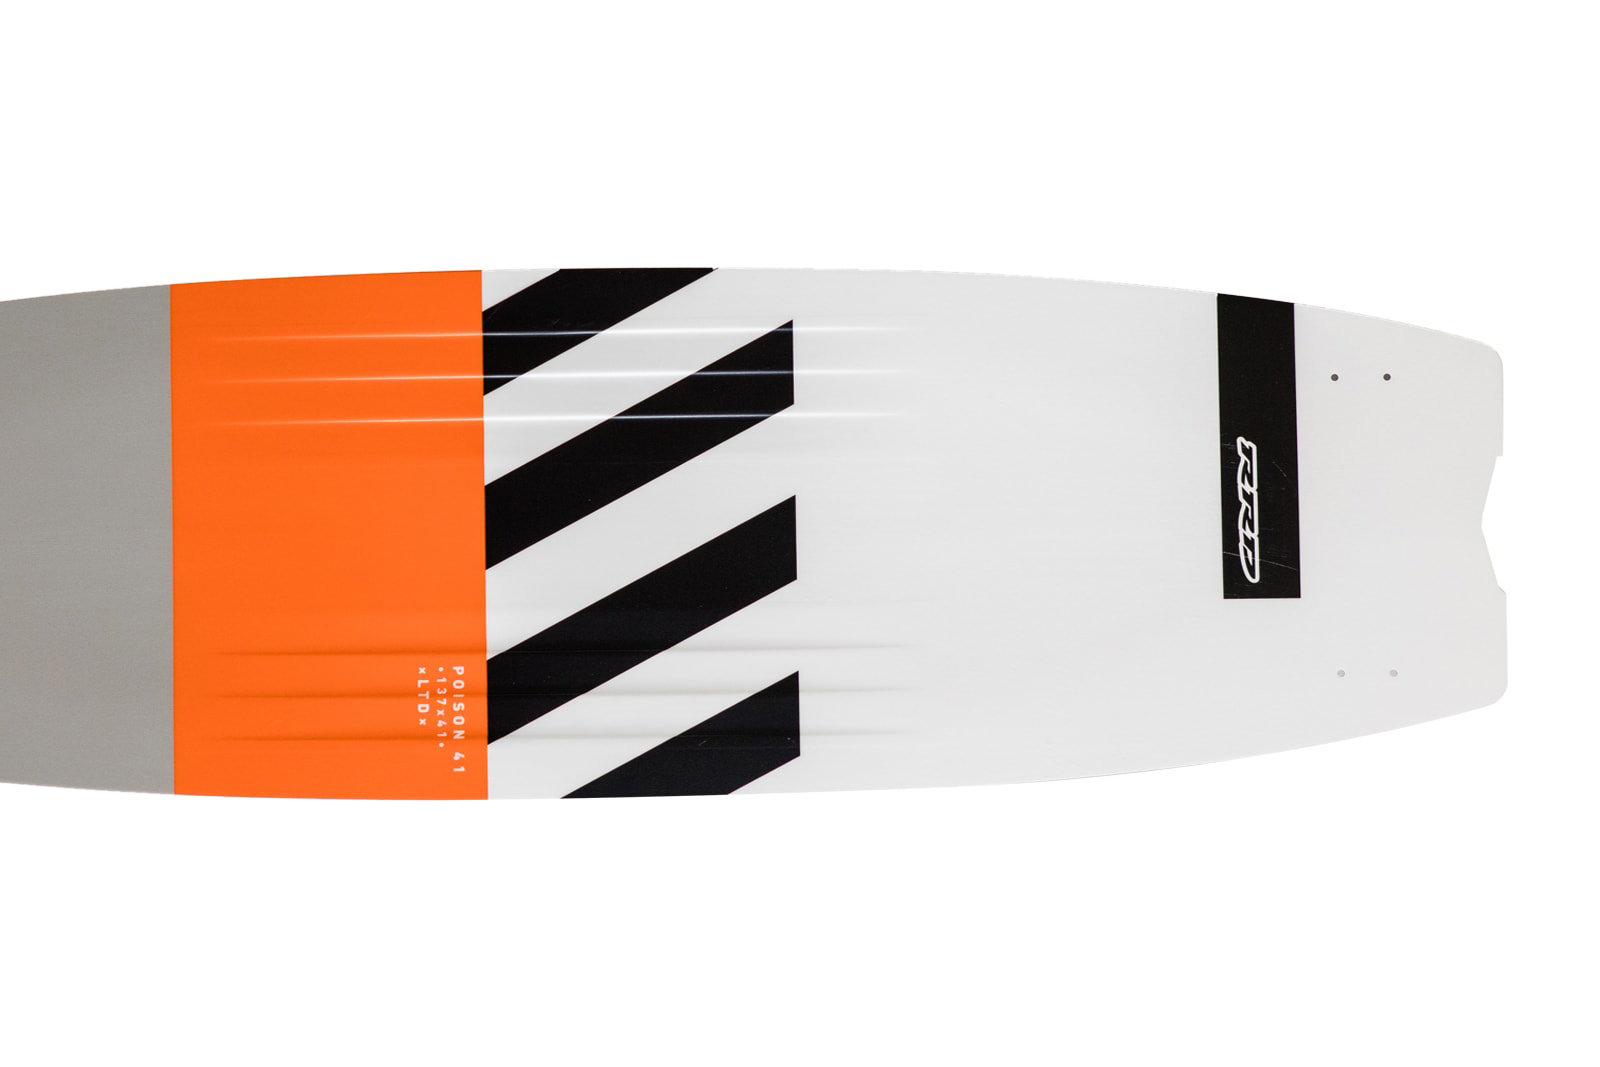 poison freestyle kiteboard rrd y25 LTD zadni strana